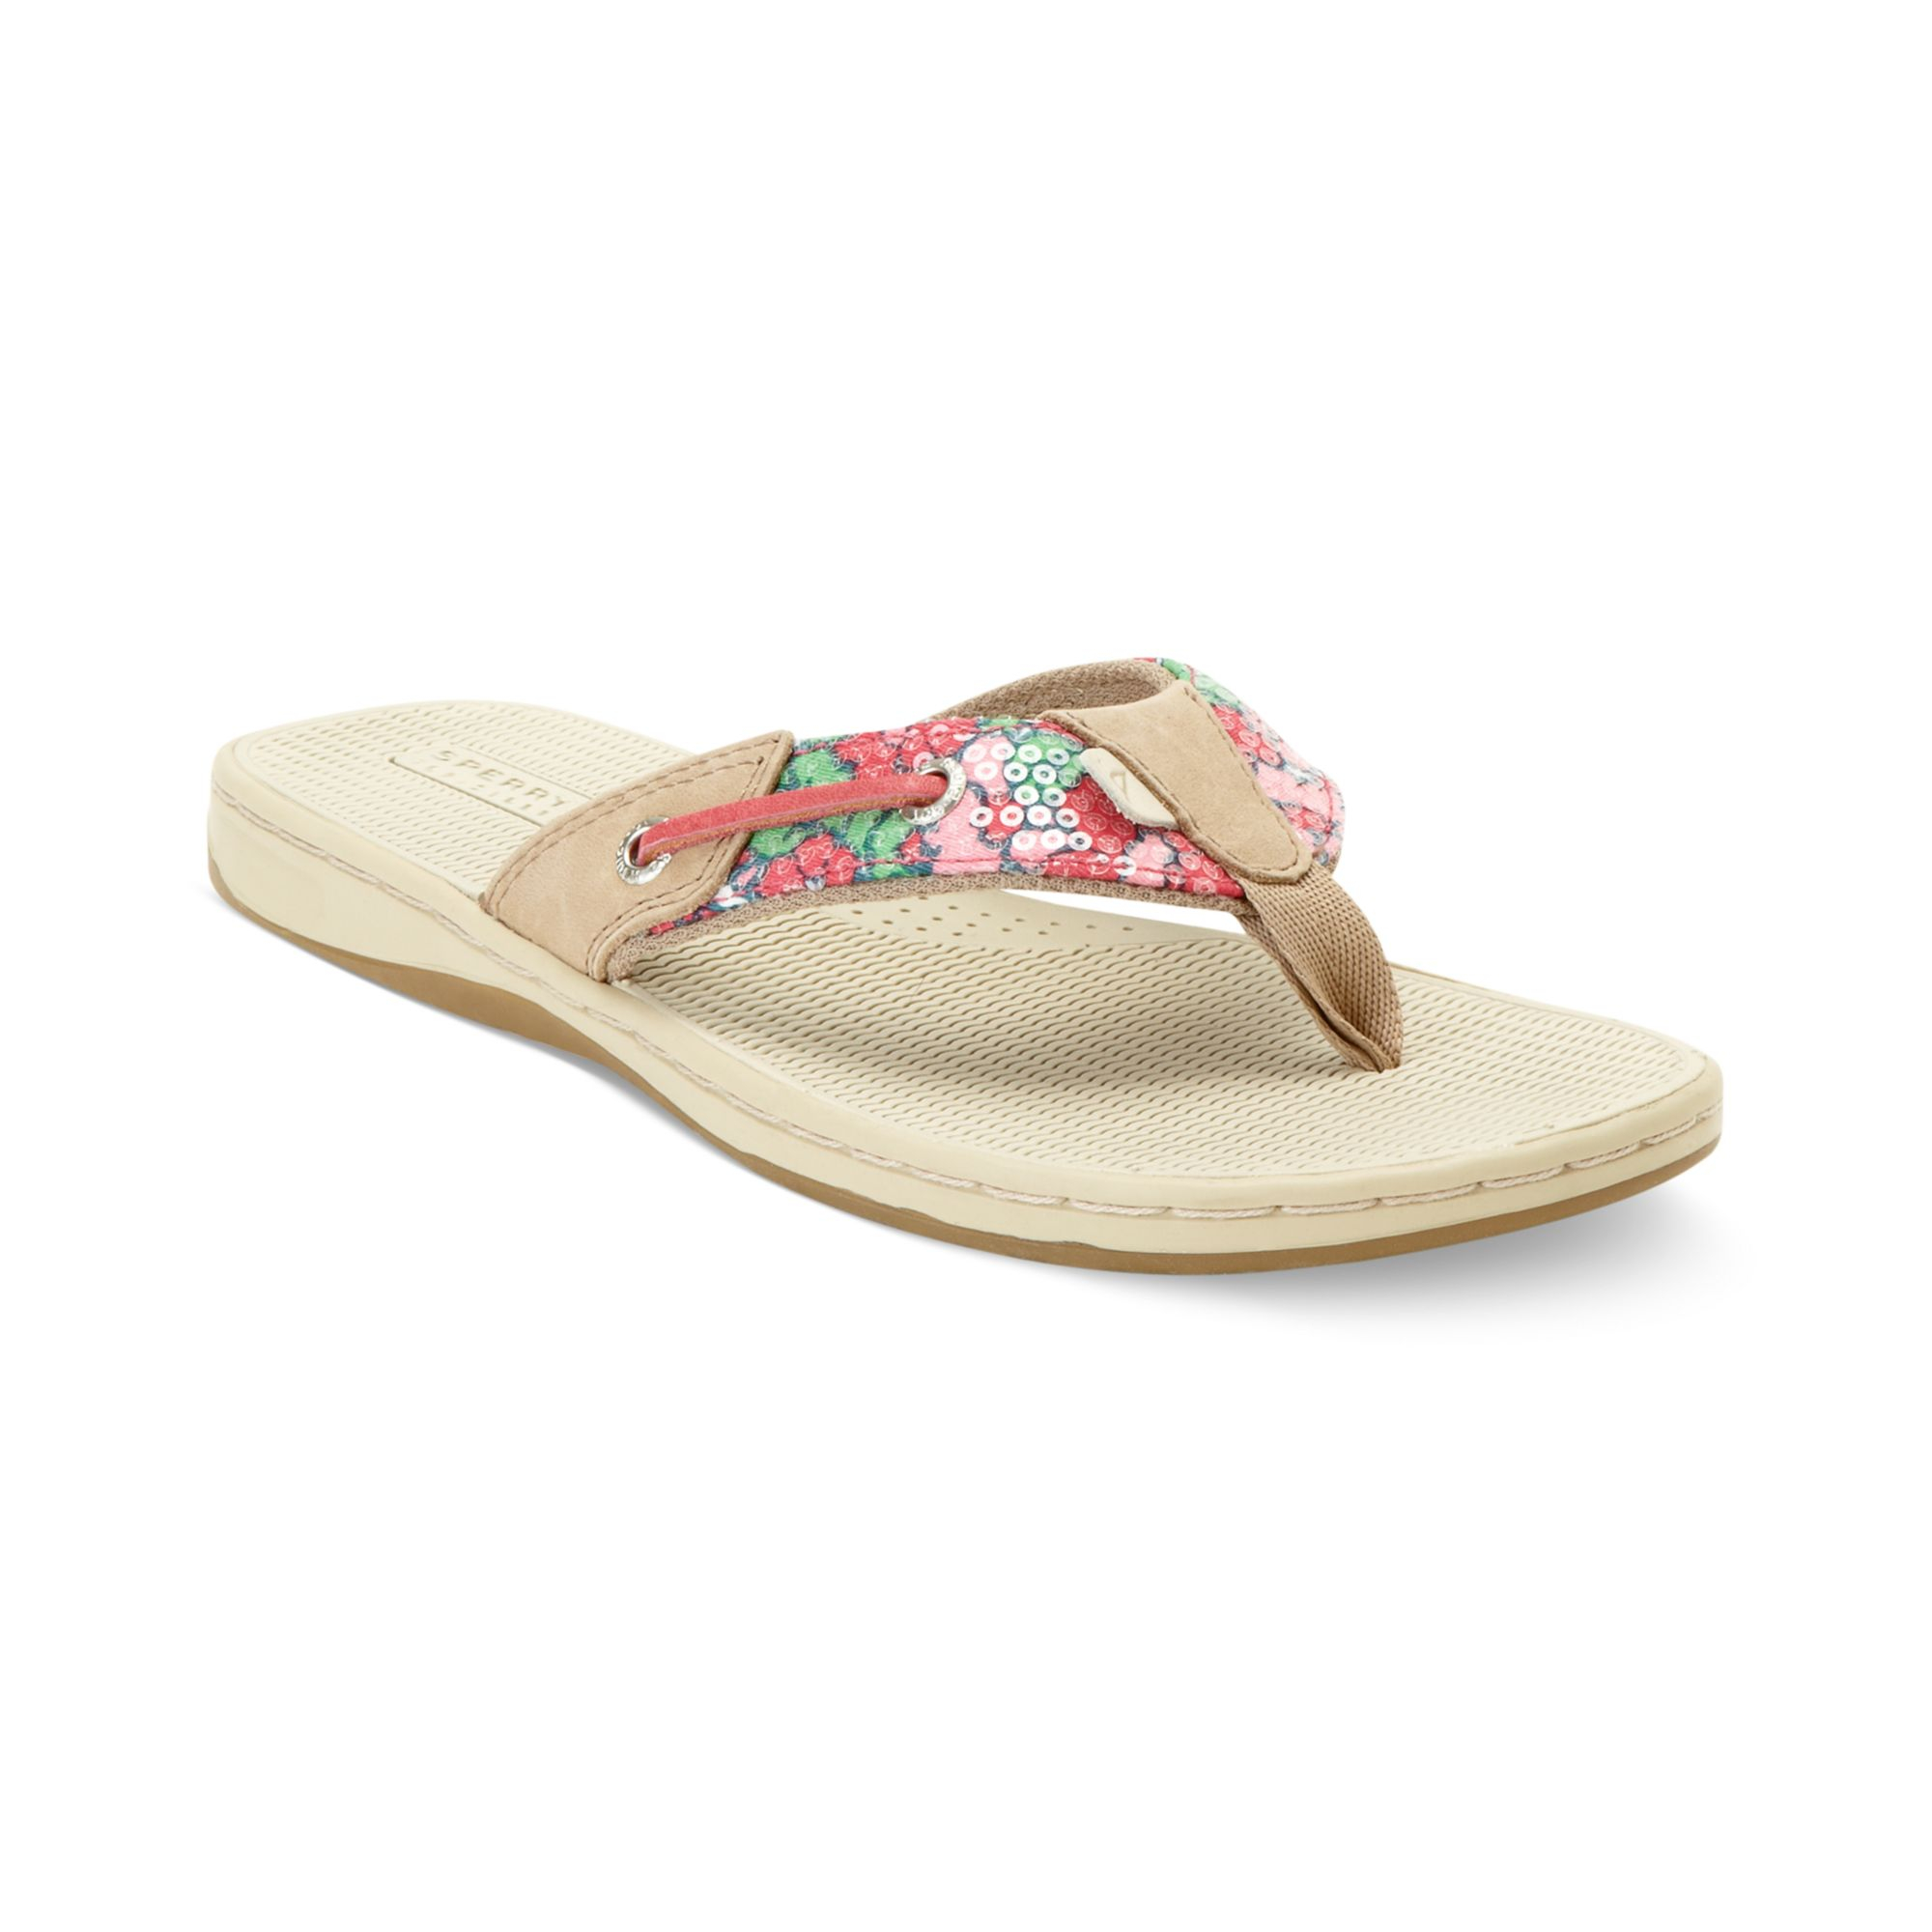 Sperry Top-Sider Seafish Thong Sandals